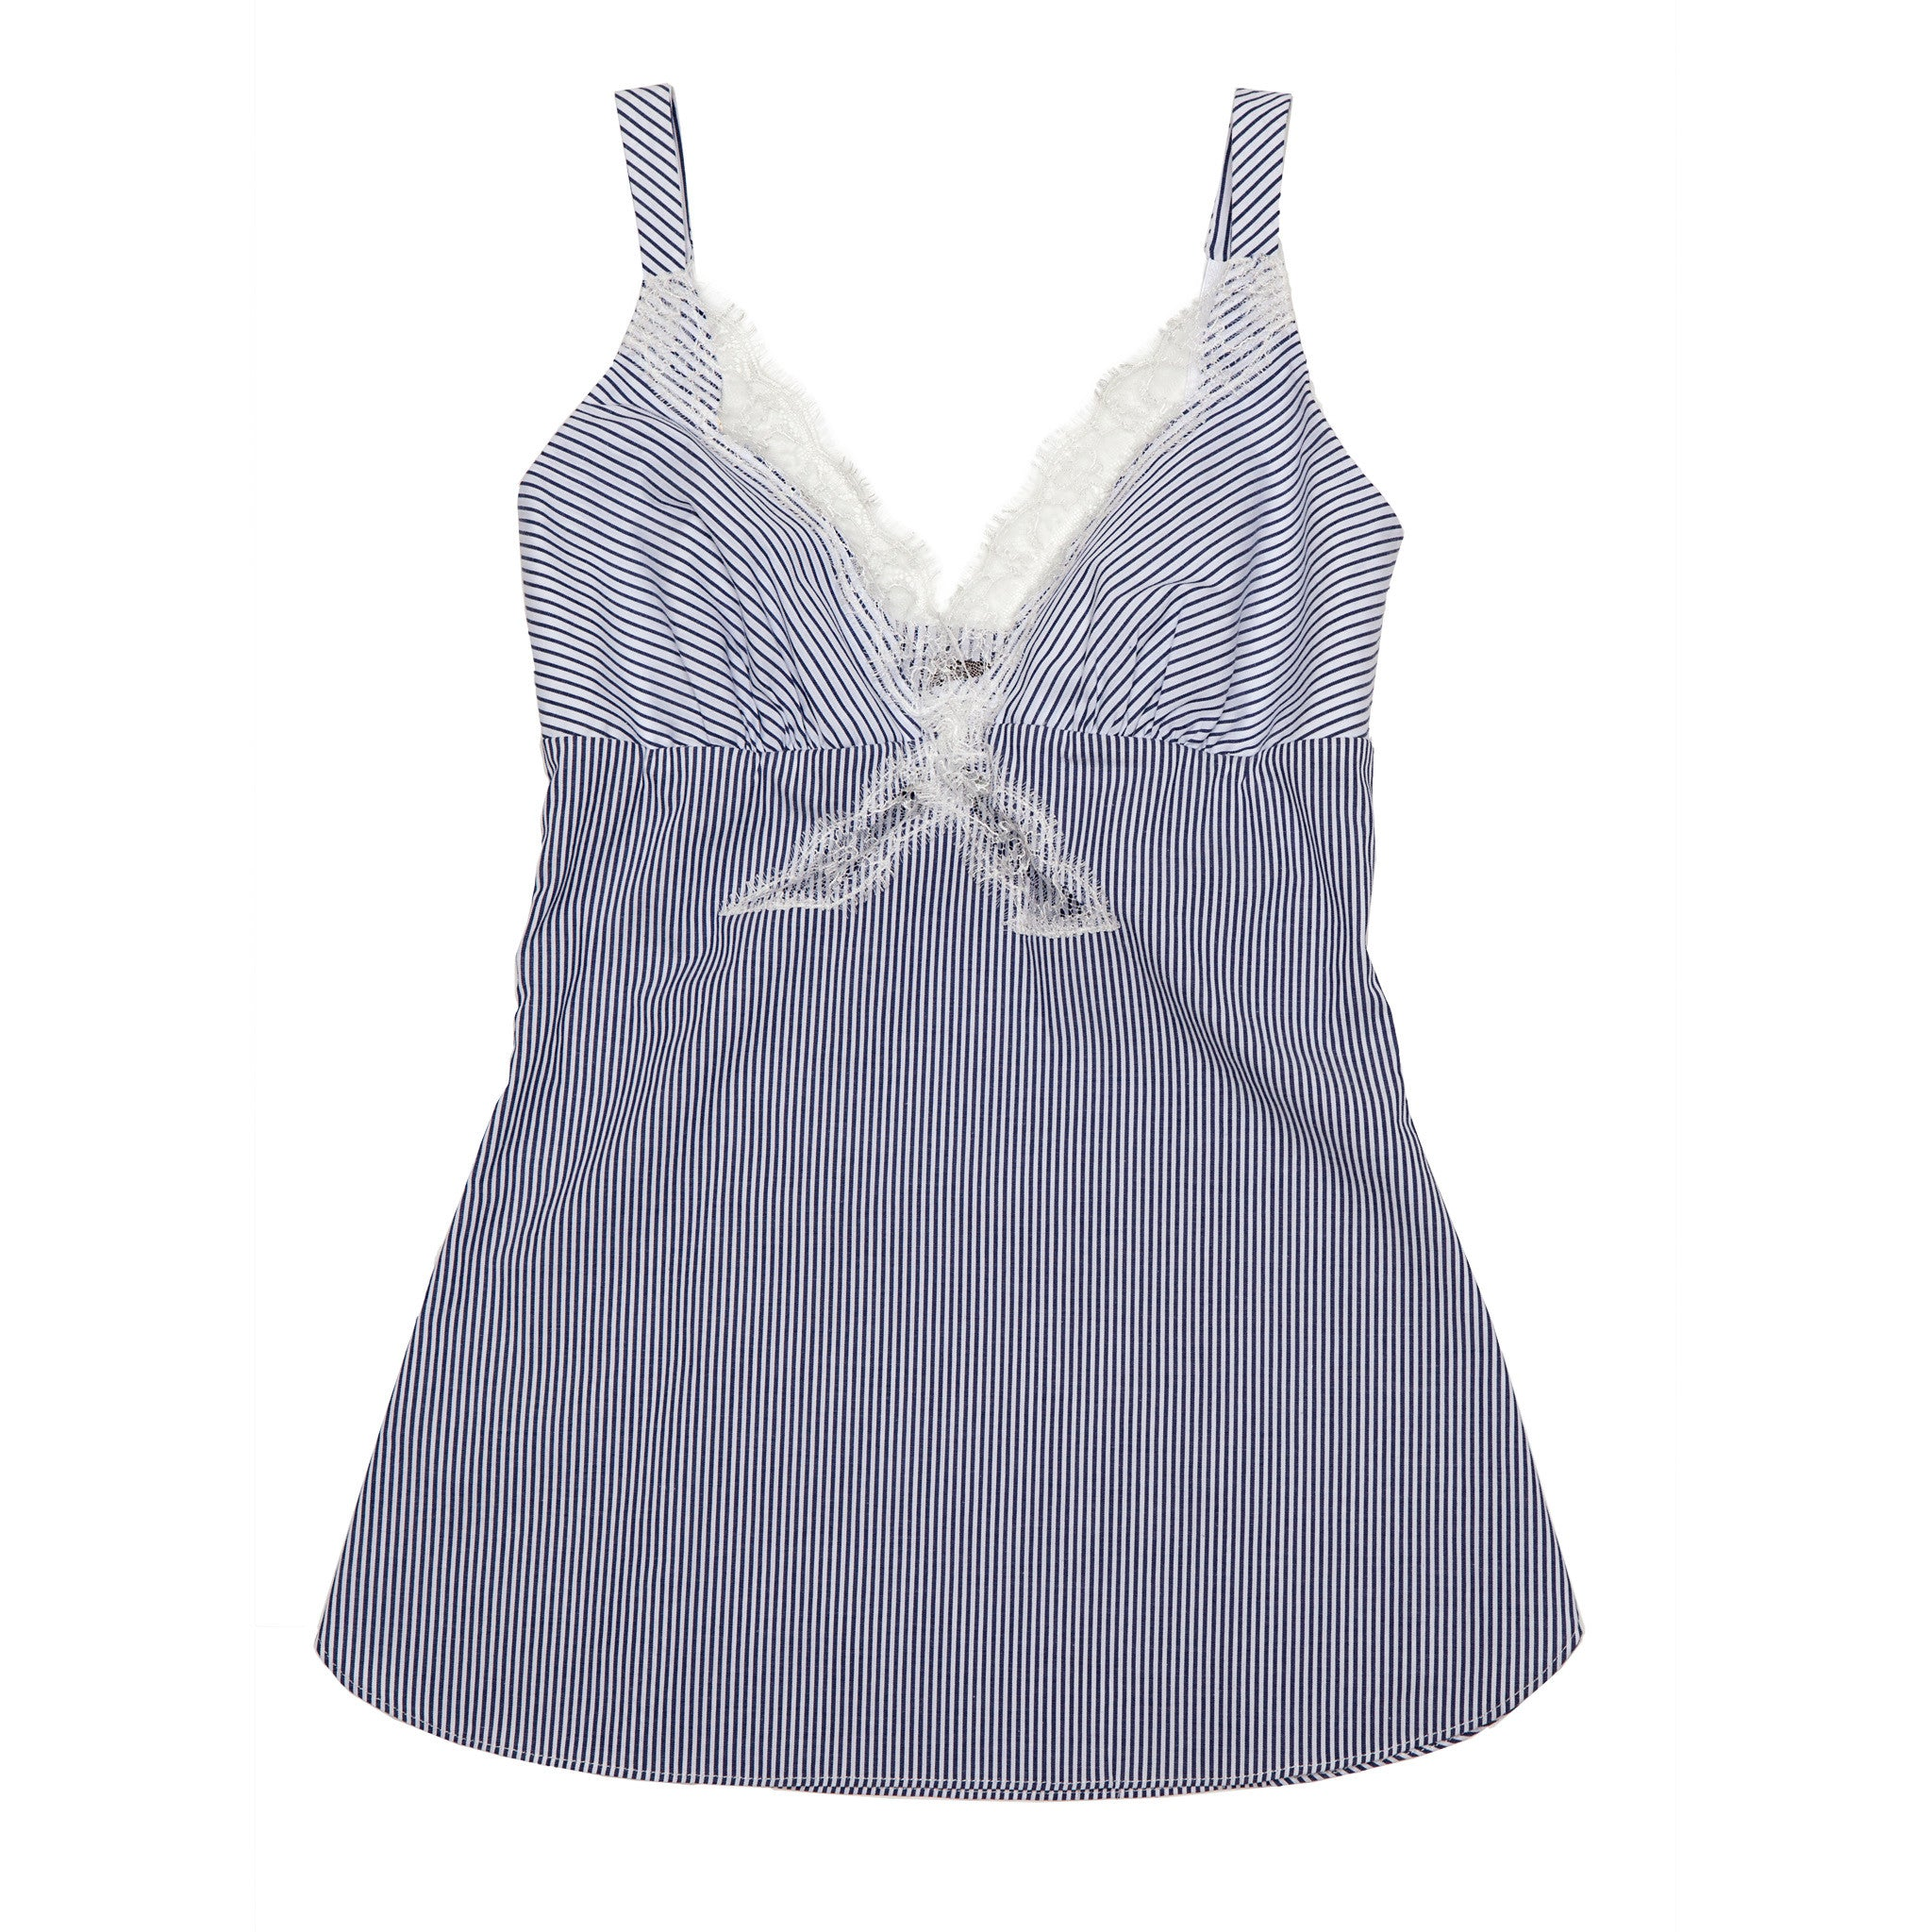 Minerva Camisole in Striped Stretch Cotton